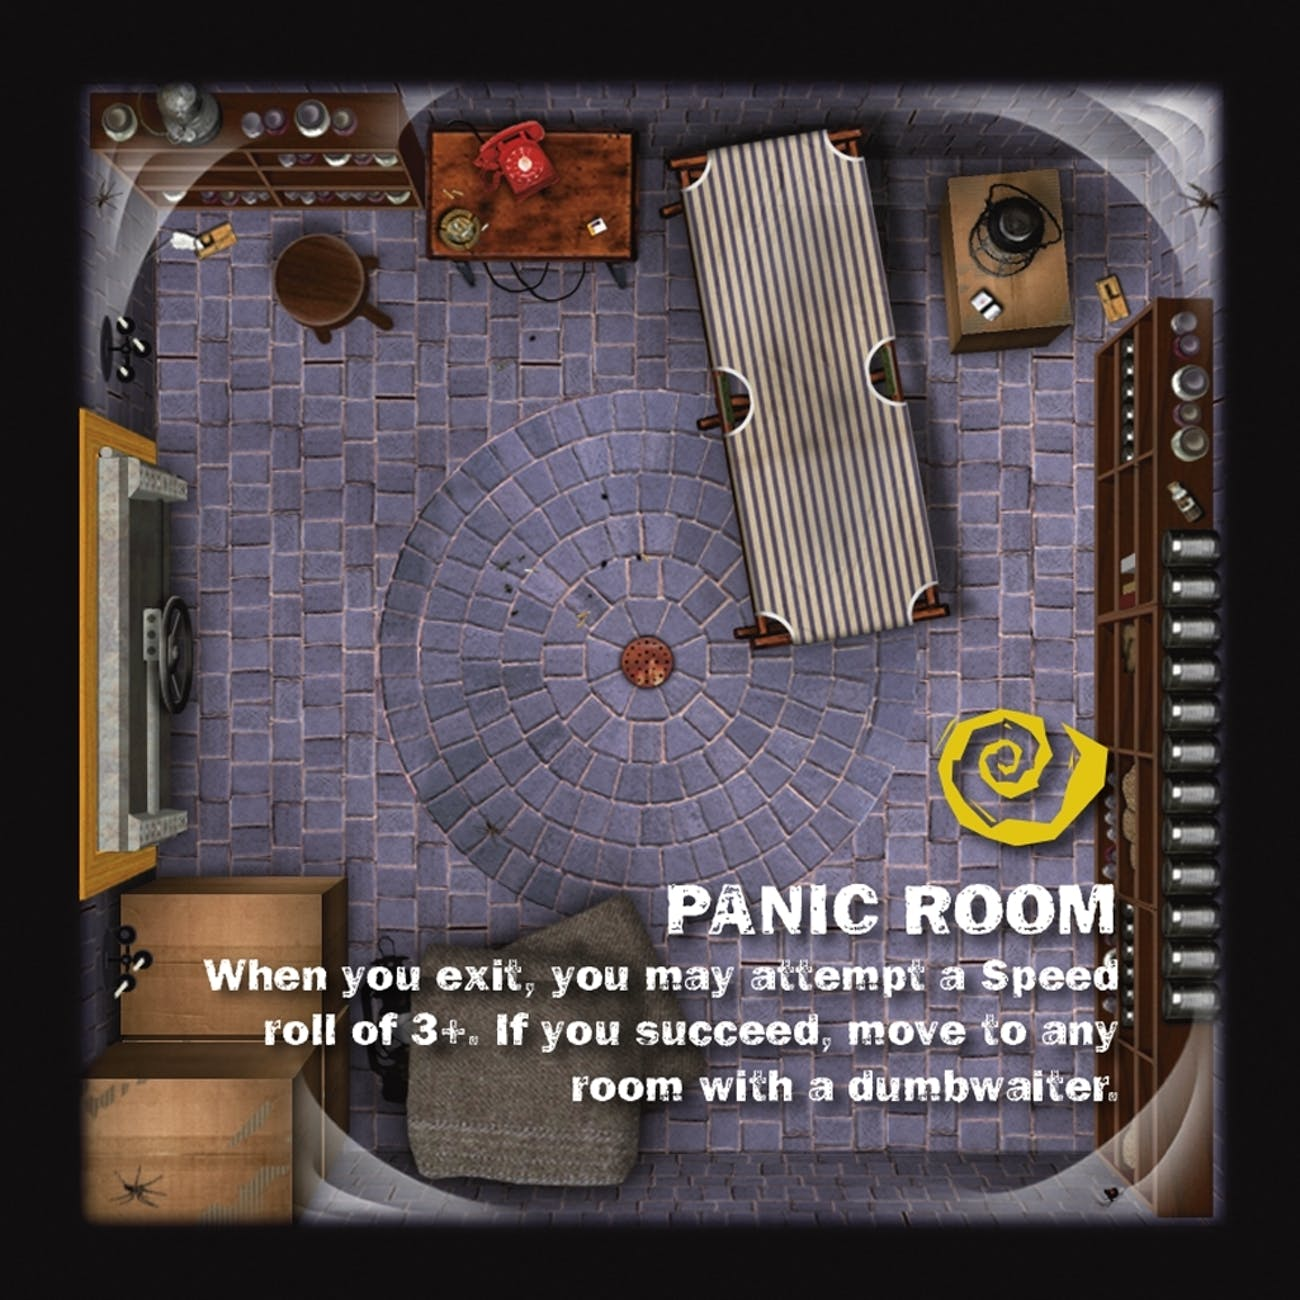 Panic Room room tile from 'Betrayal at House on the Hill' expansion 'Widow's Walk'